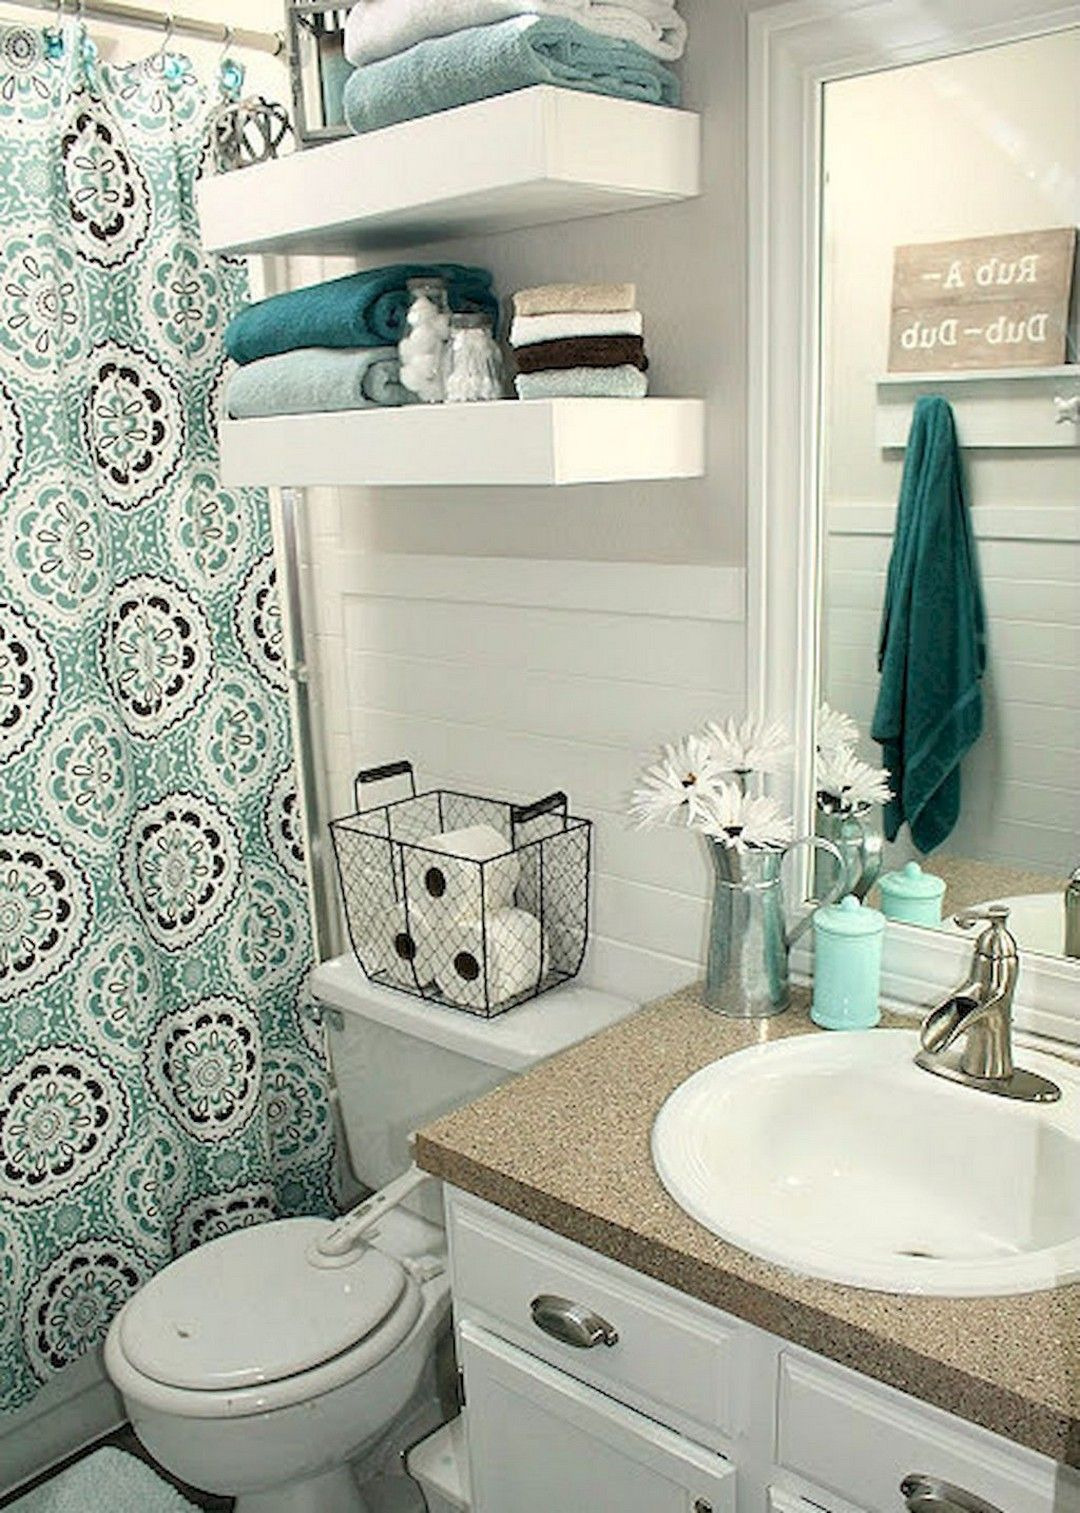 decorating small bathroom diy apartment ideas on first with no windows bathrooms plants designing india pinterest for without